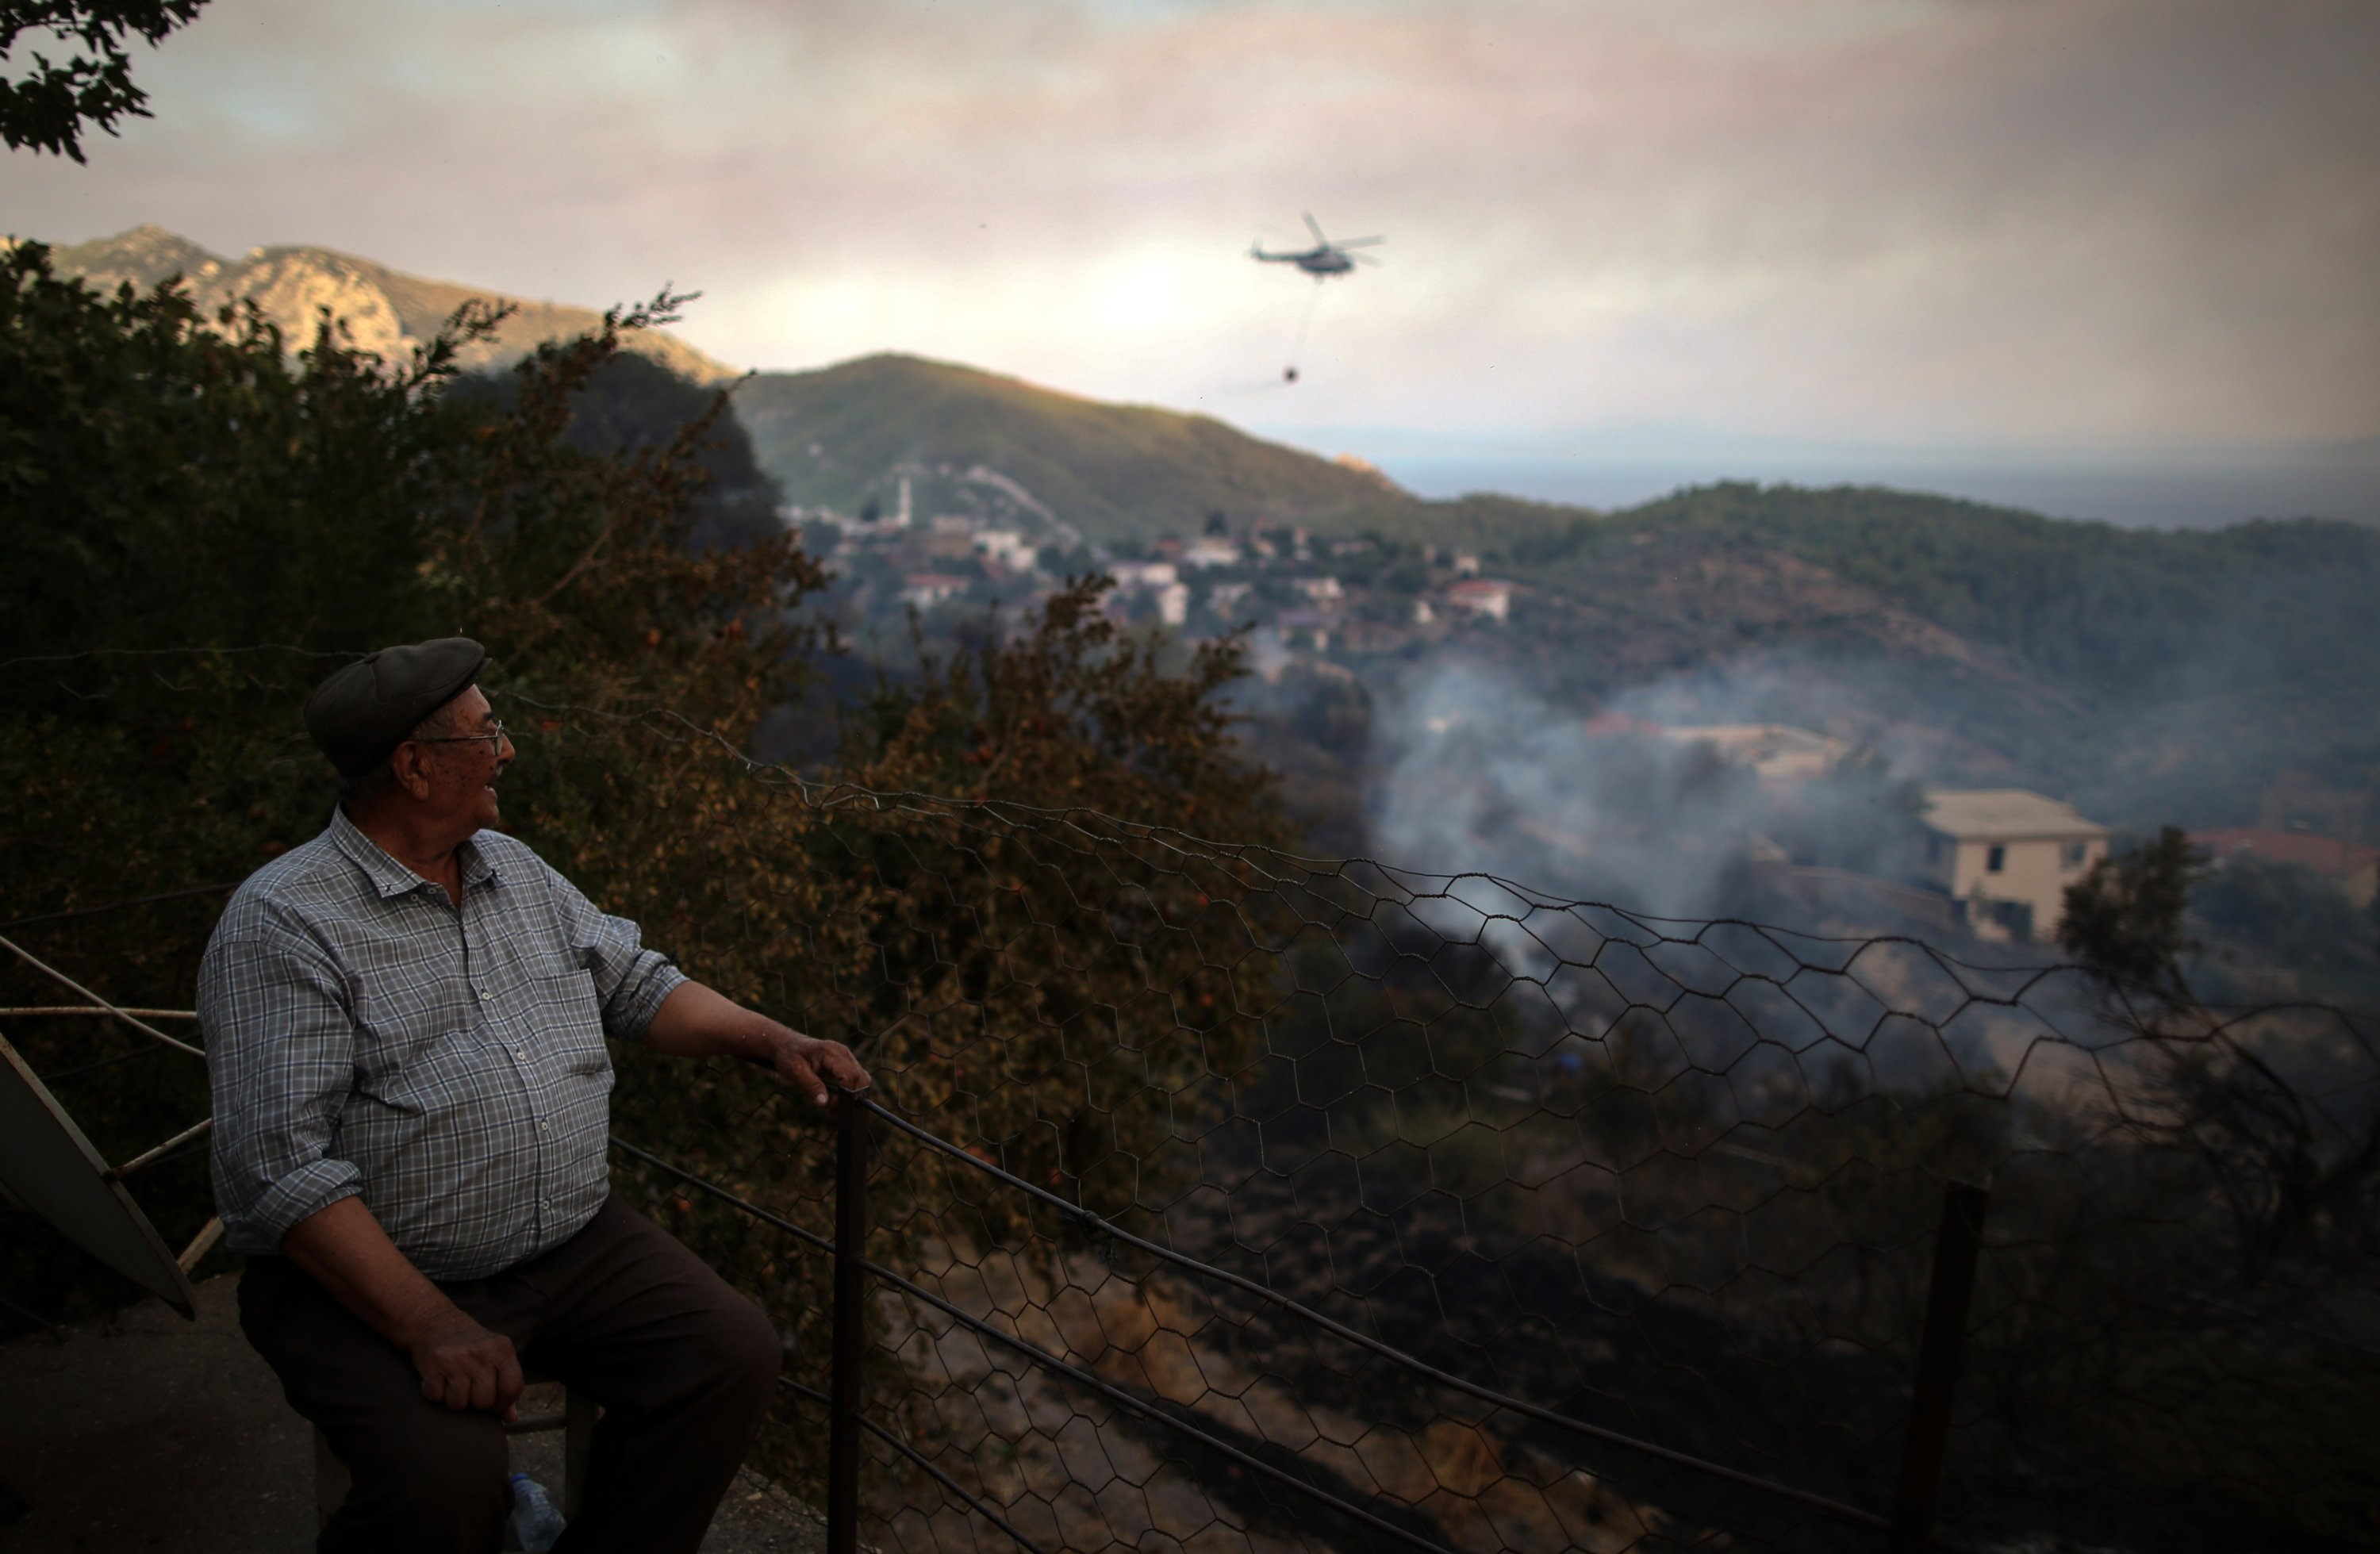 A man watches forest fires burn from his balcony in Bozdoğan village in Milas district in Muğla, Turkey on August 2, 2021 (EPA Photo)